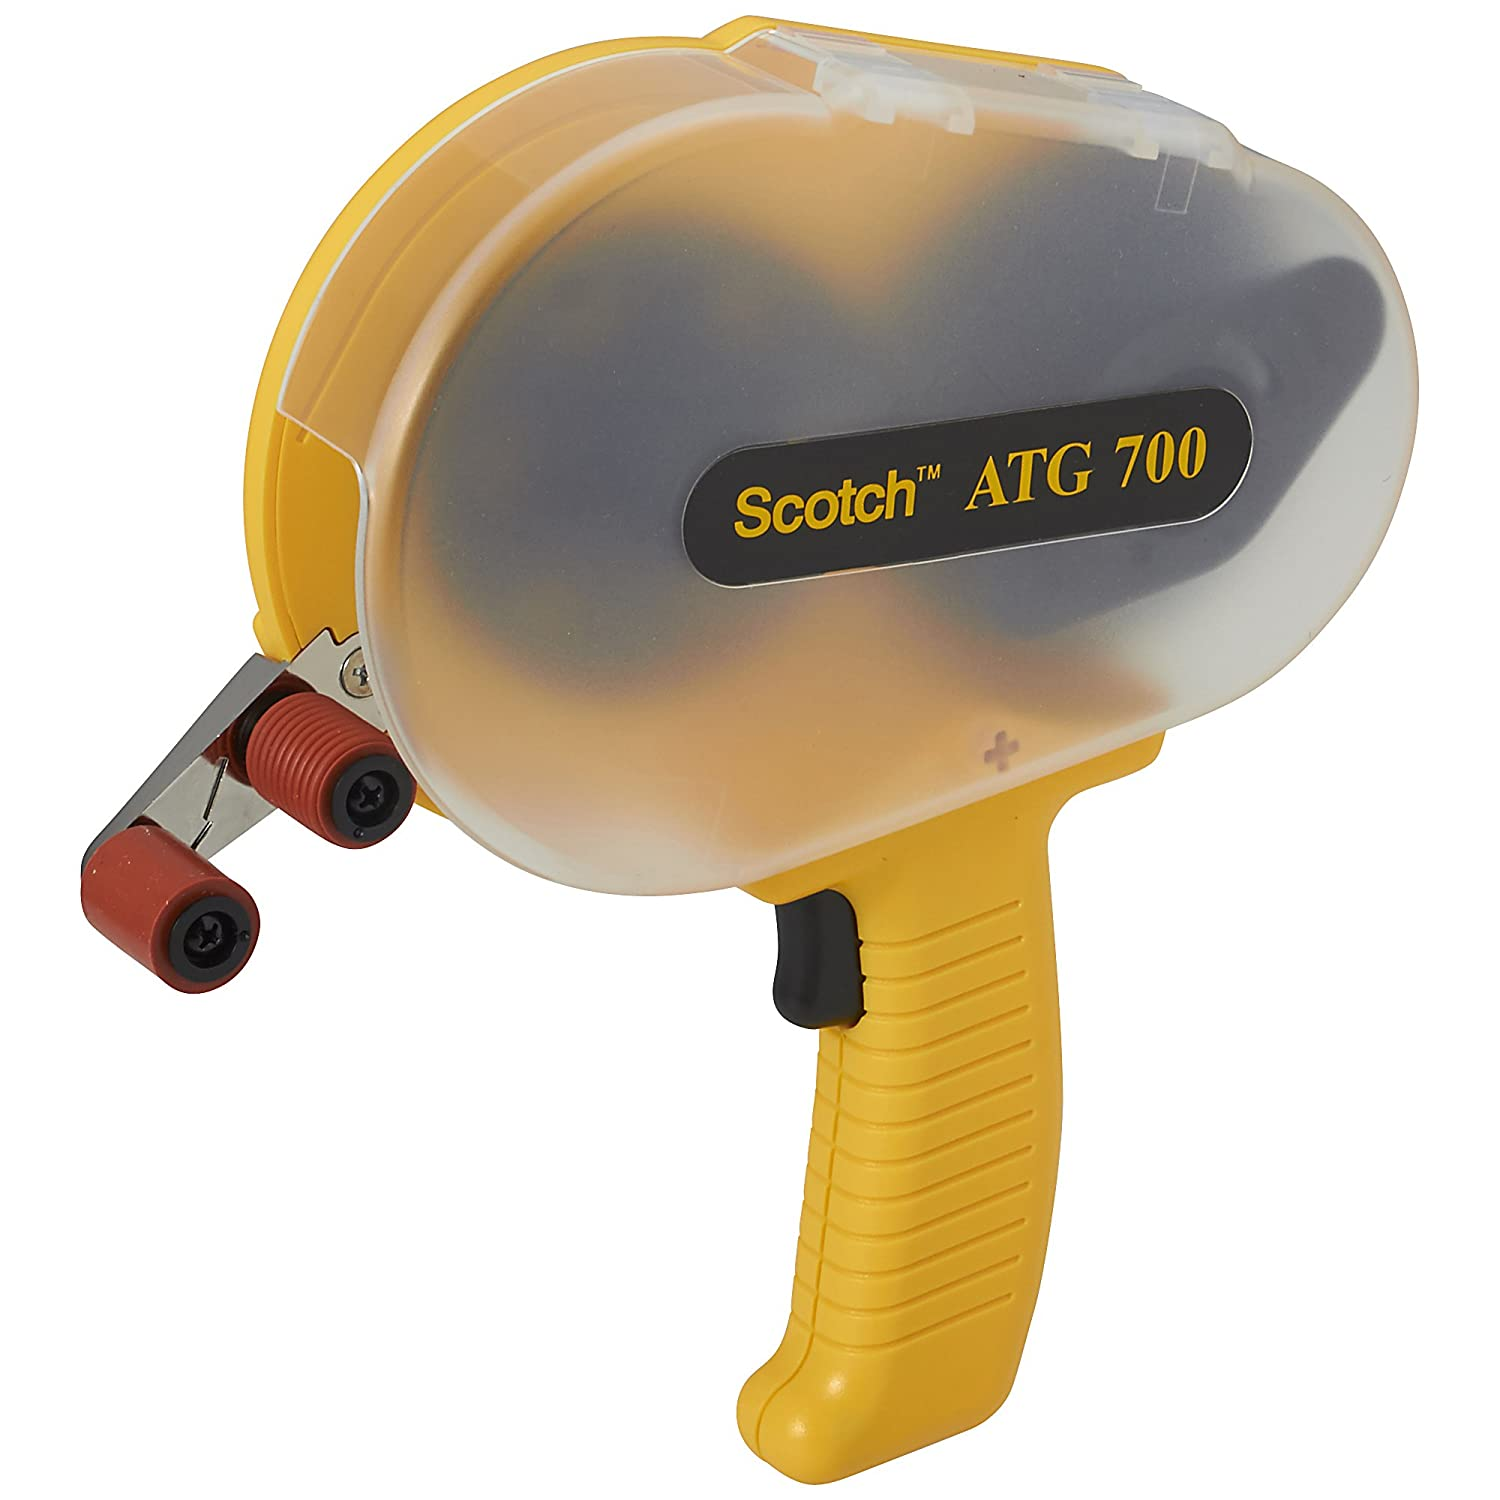 Scotch Atg700 Adhesive Applicator System Yellow Isolasi 3m Scouth 23 Rubber Spicing Tape Business Industry Science